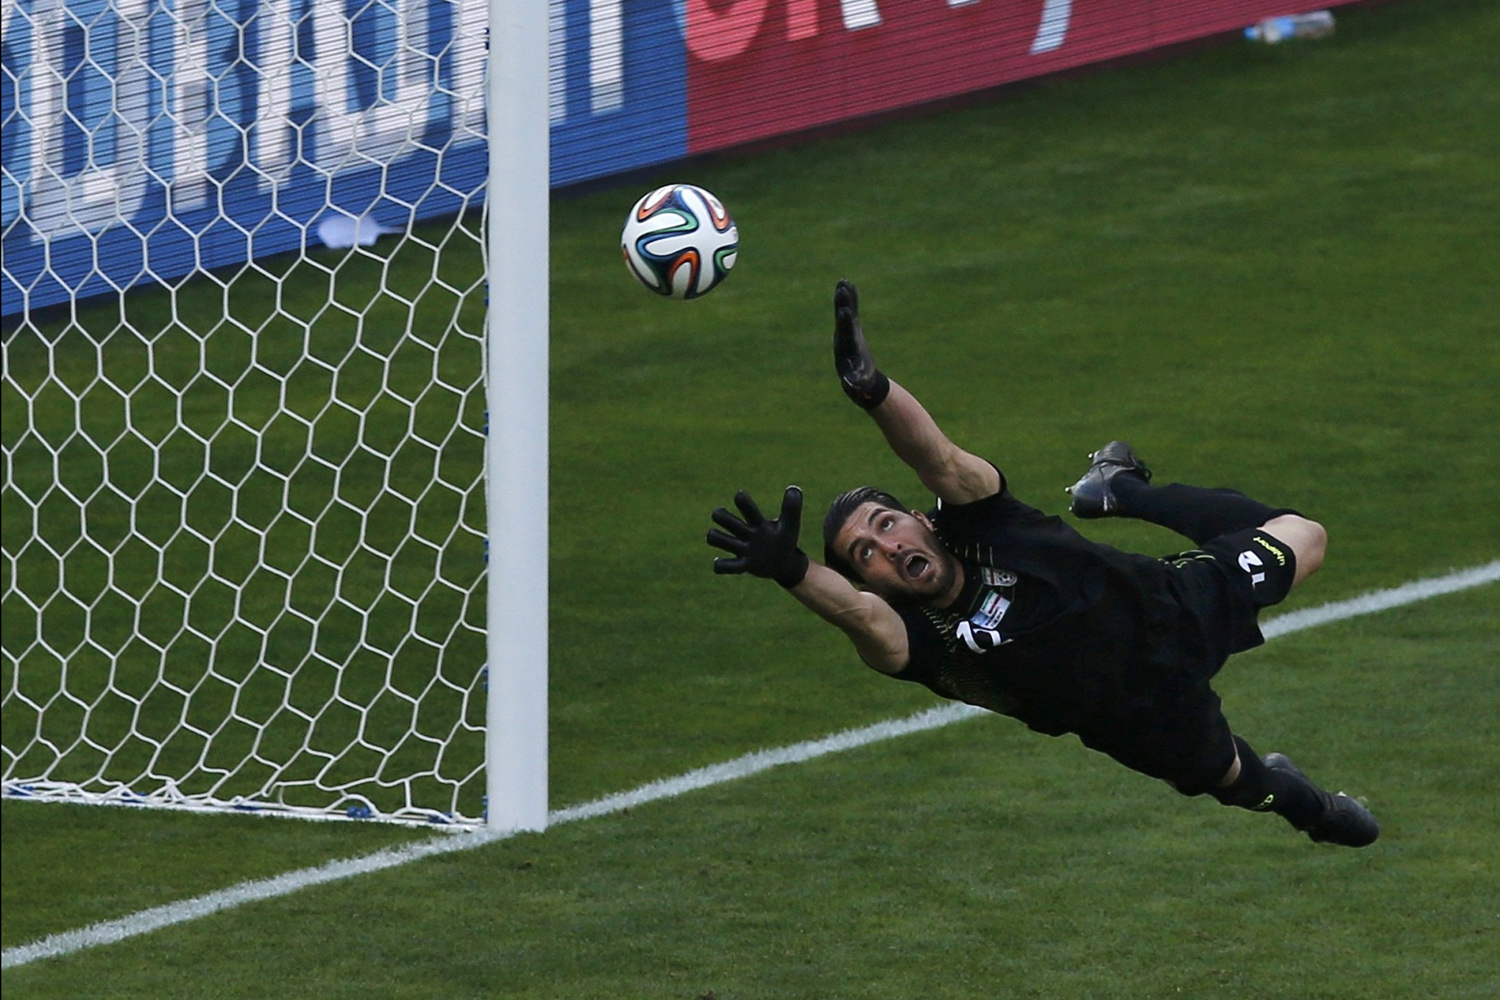 Jun. 21, 2014. Iran's goalkeeper Alireza Haghighi fails to save a goal by Argentina's Lionel Messi (unseen) during their 2014 World Cup Group F soccer match at the Mineirao stadium in Belo Horizonte, Brazil.